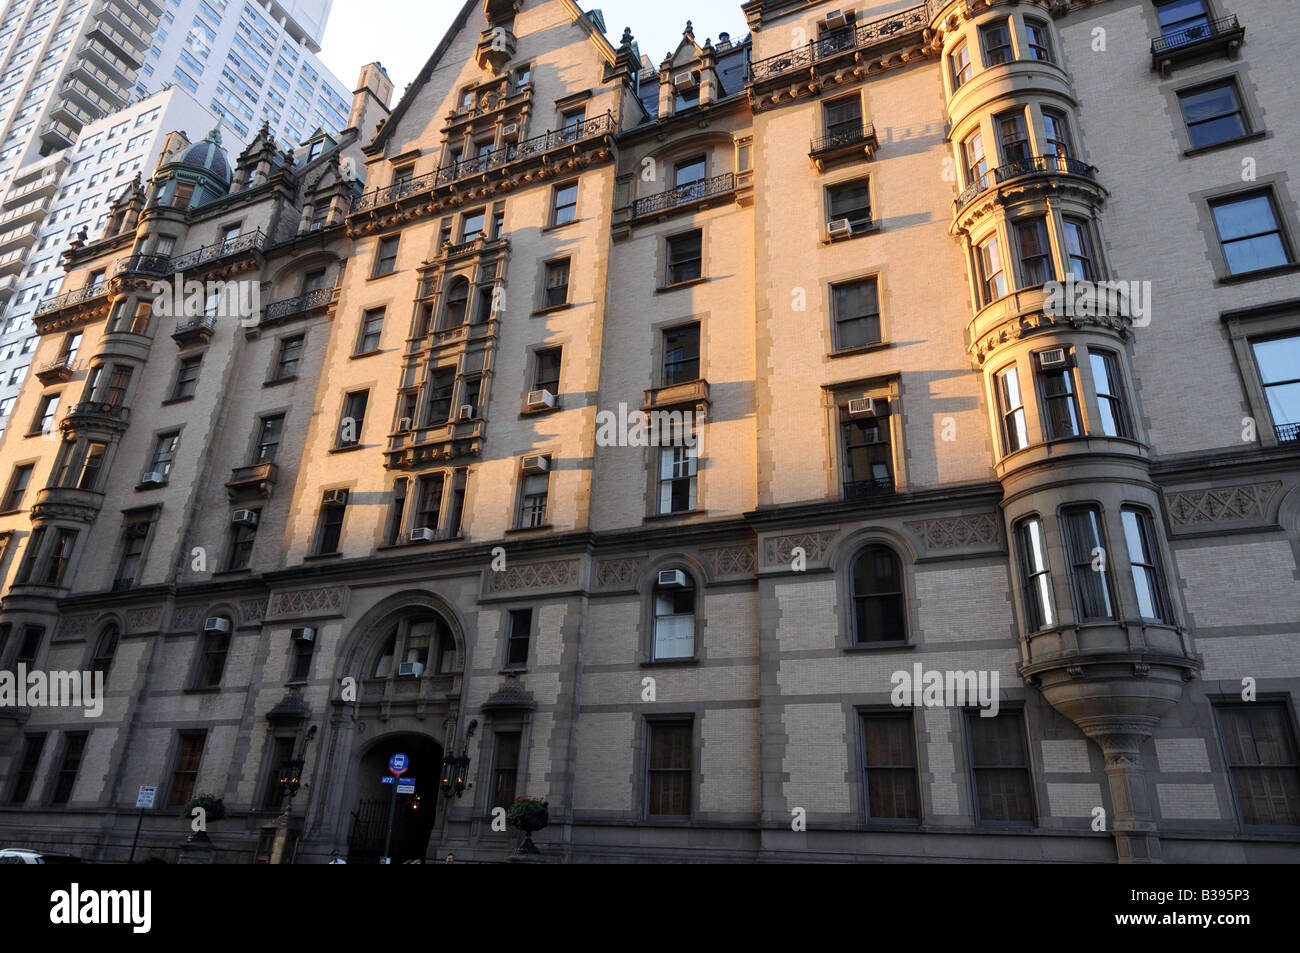 nyc luxury apartments. Dakota Apartment Building NYC Oldest Luxury Building And Place  Where John Lennon Was Shot